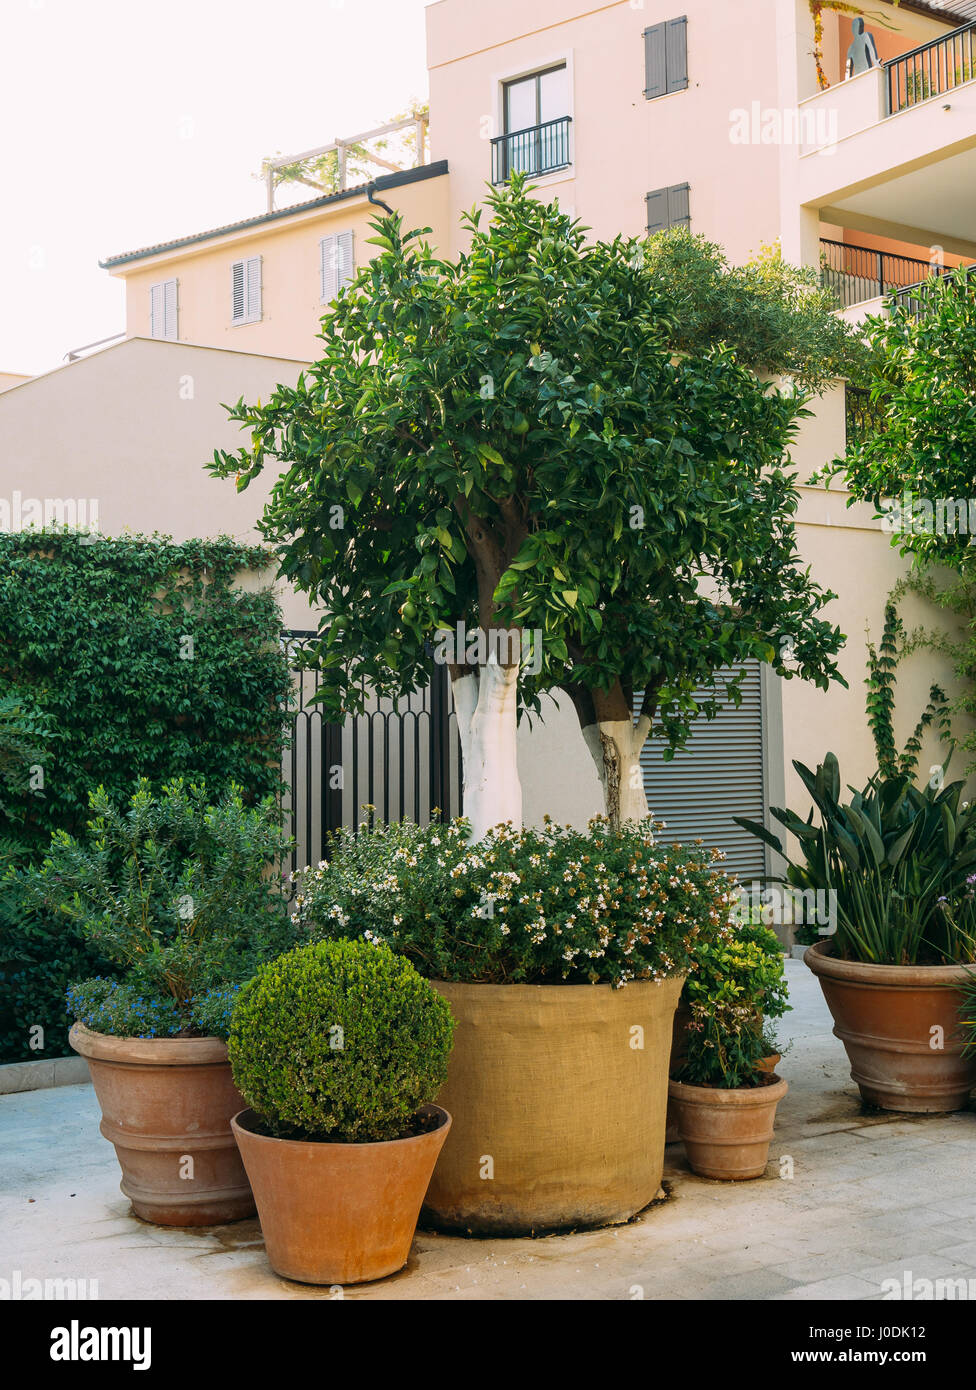 A Tree In A Pot. Small Trees In Clay Pots